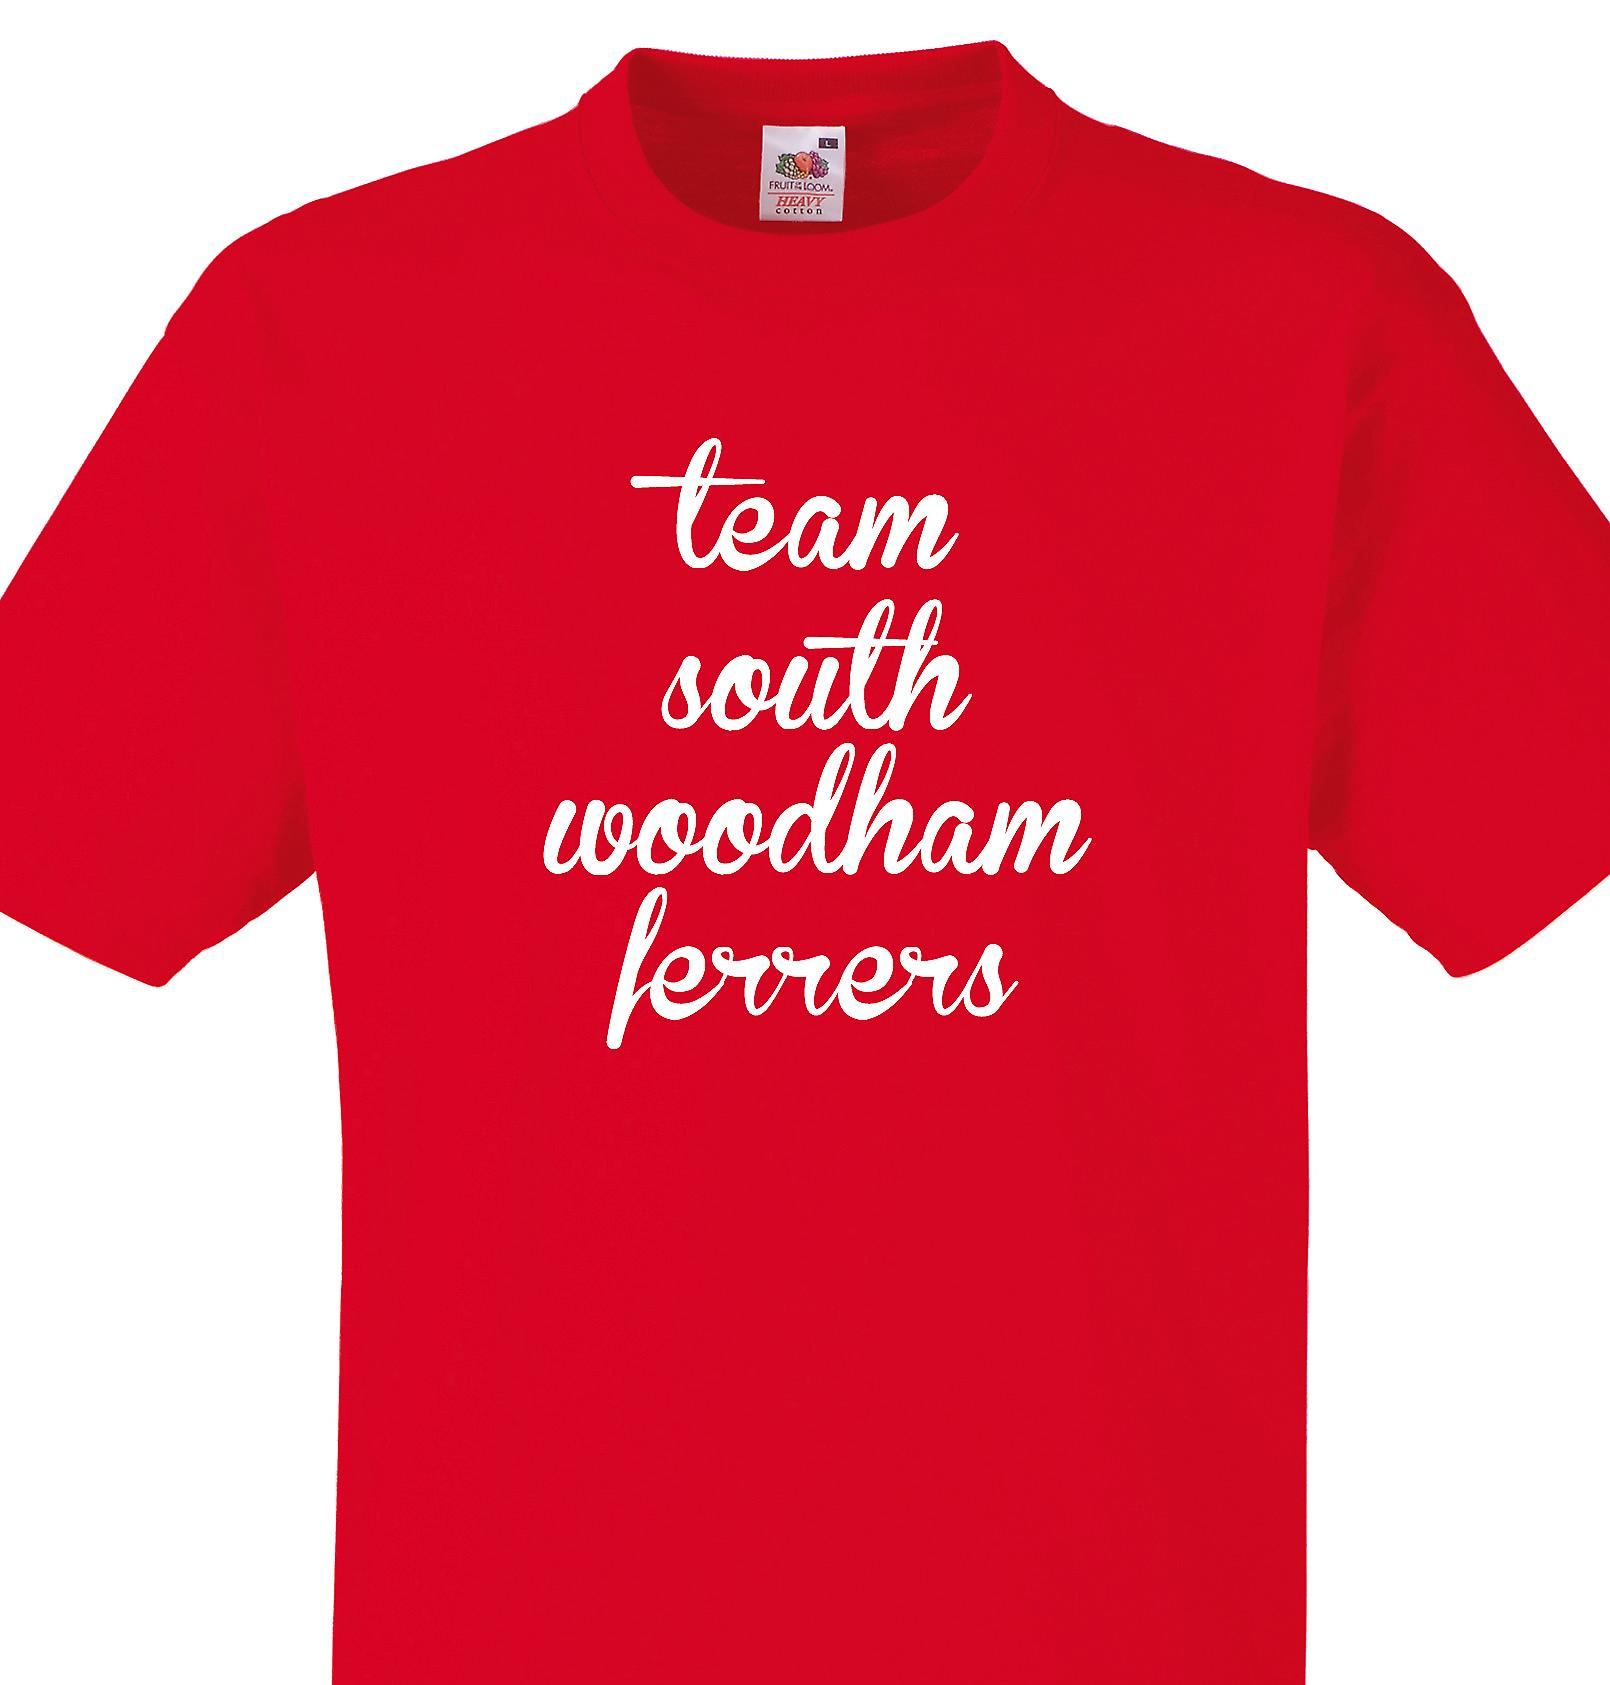 Team South woodham ferrers Red T shirt